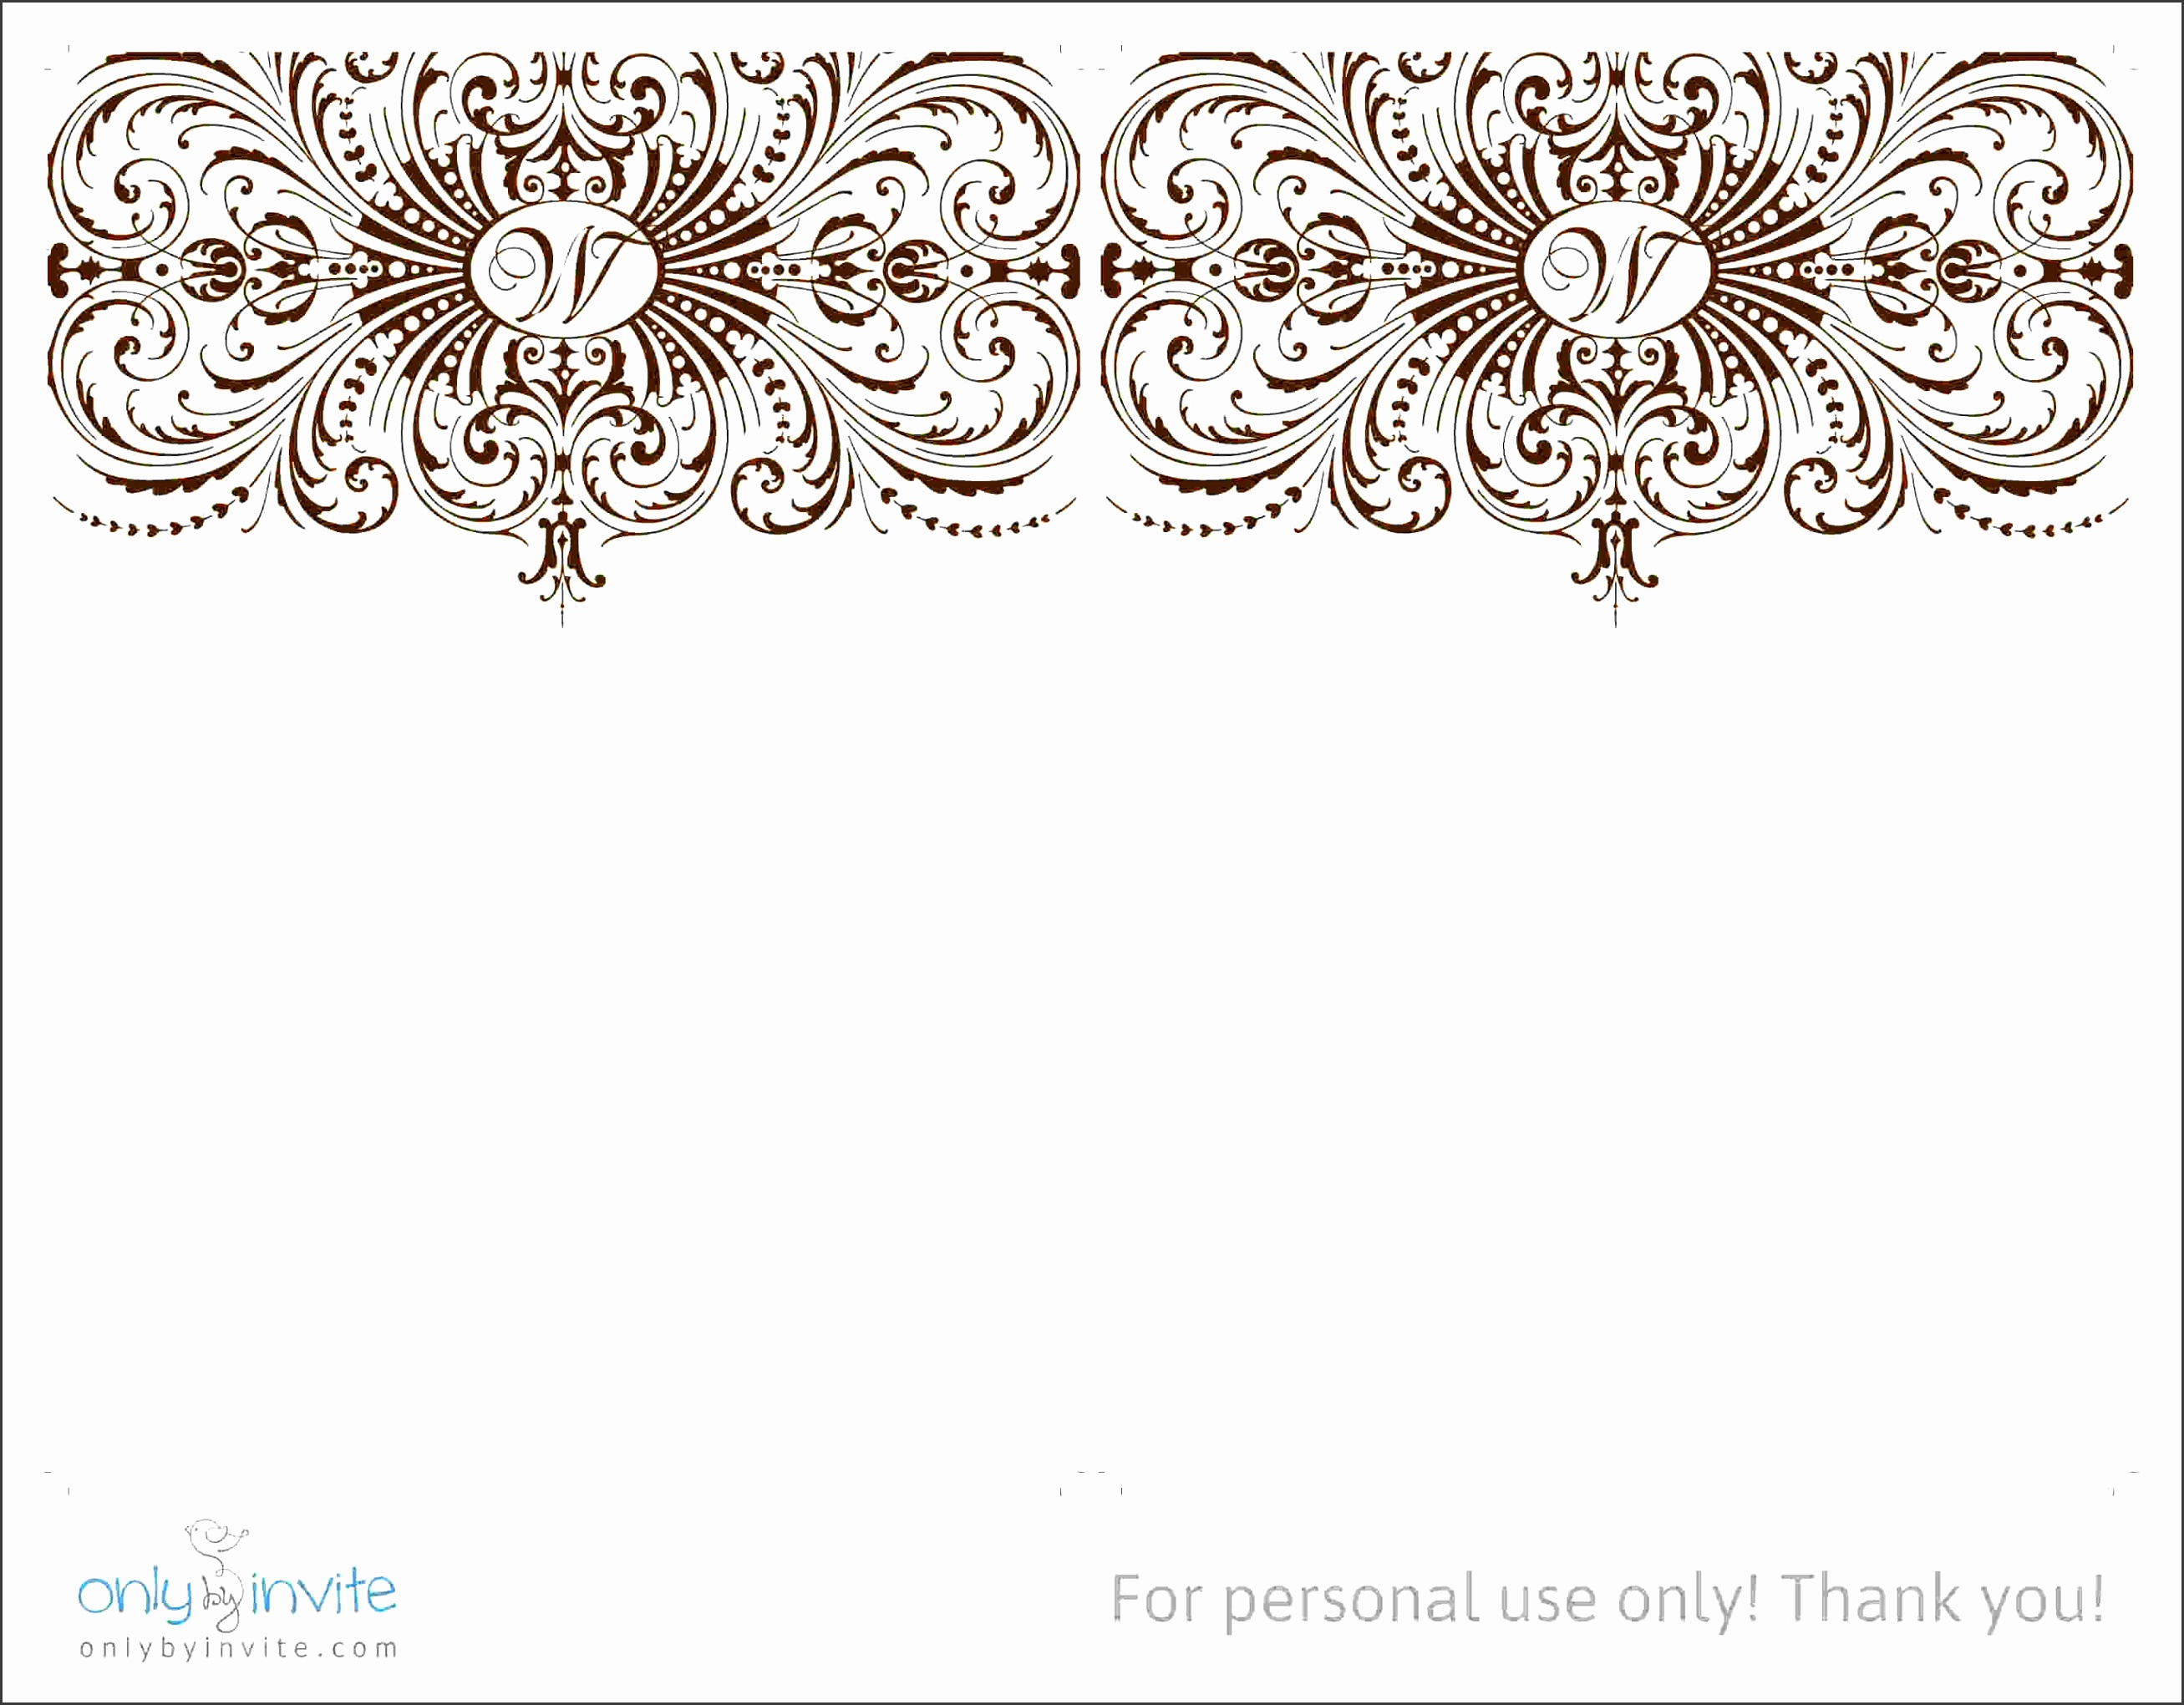 Related Image for Wedding Invitation Templates Word 2010